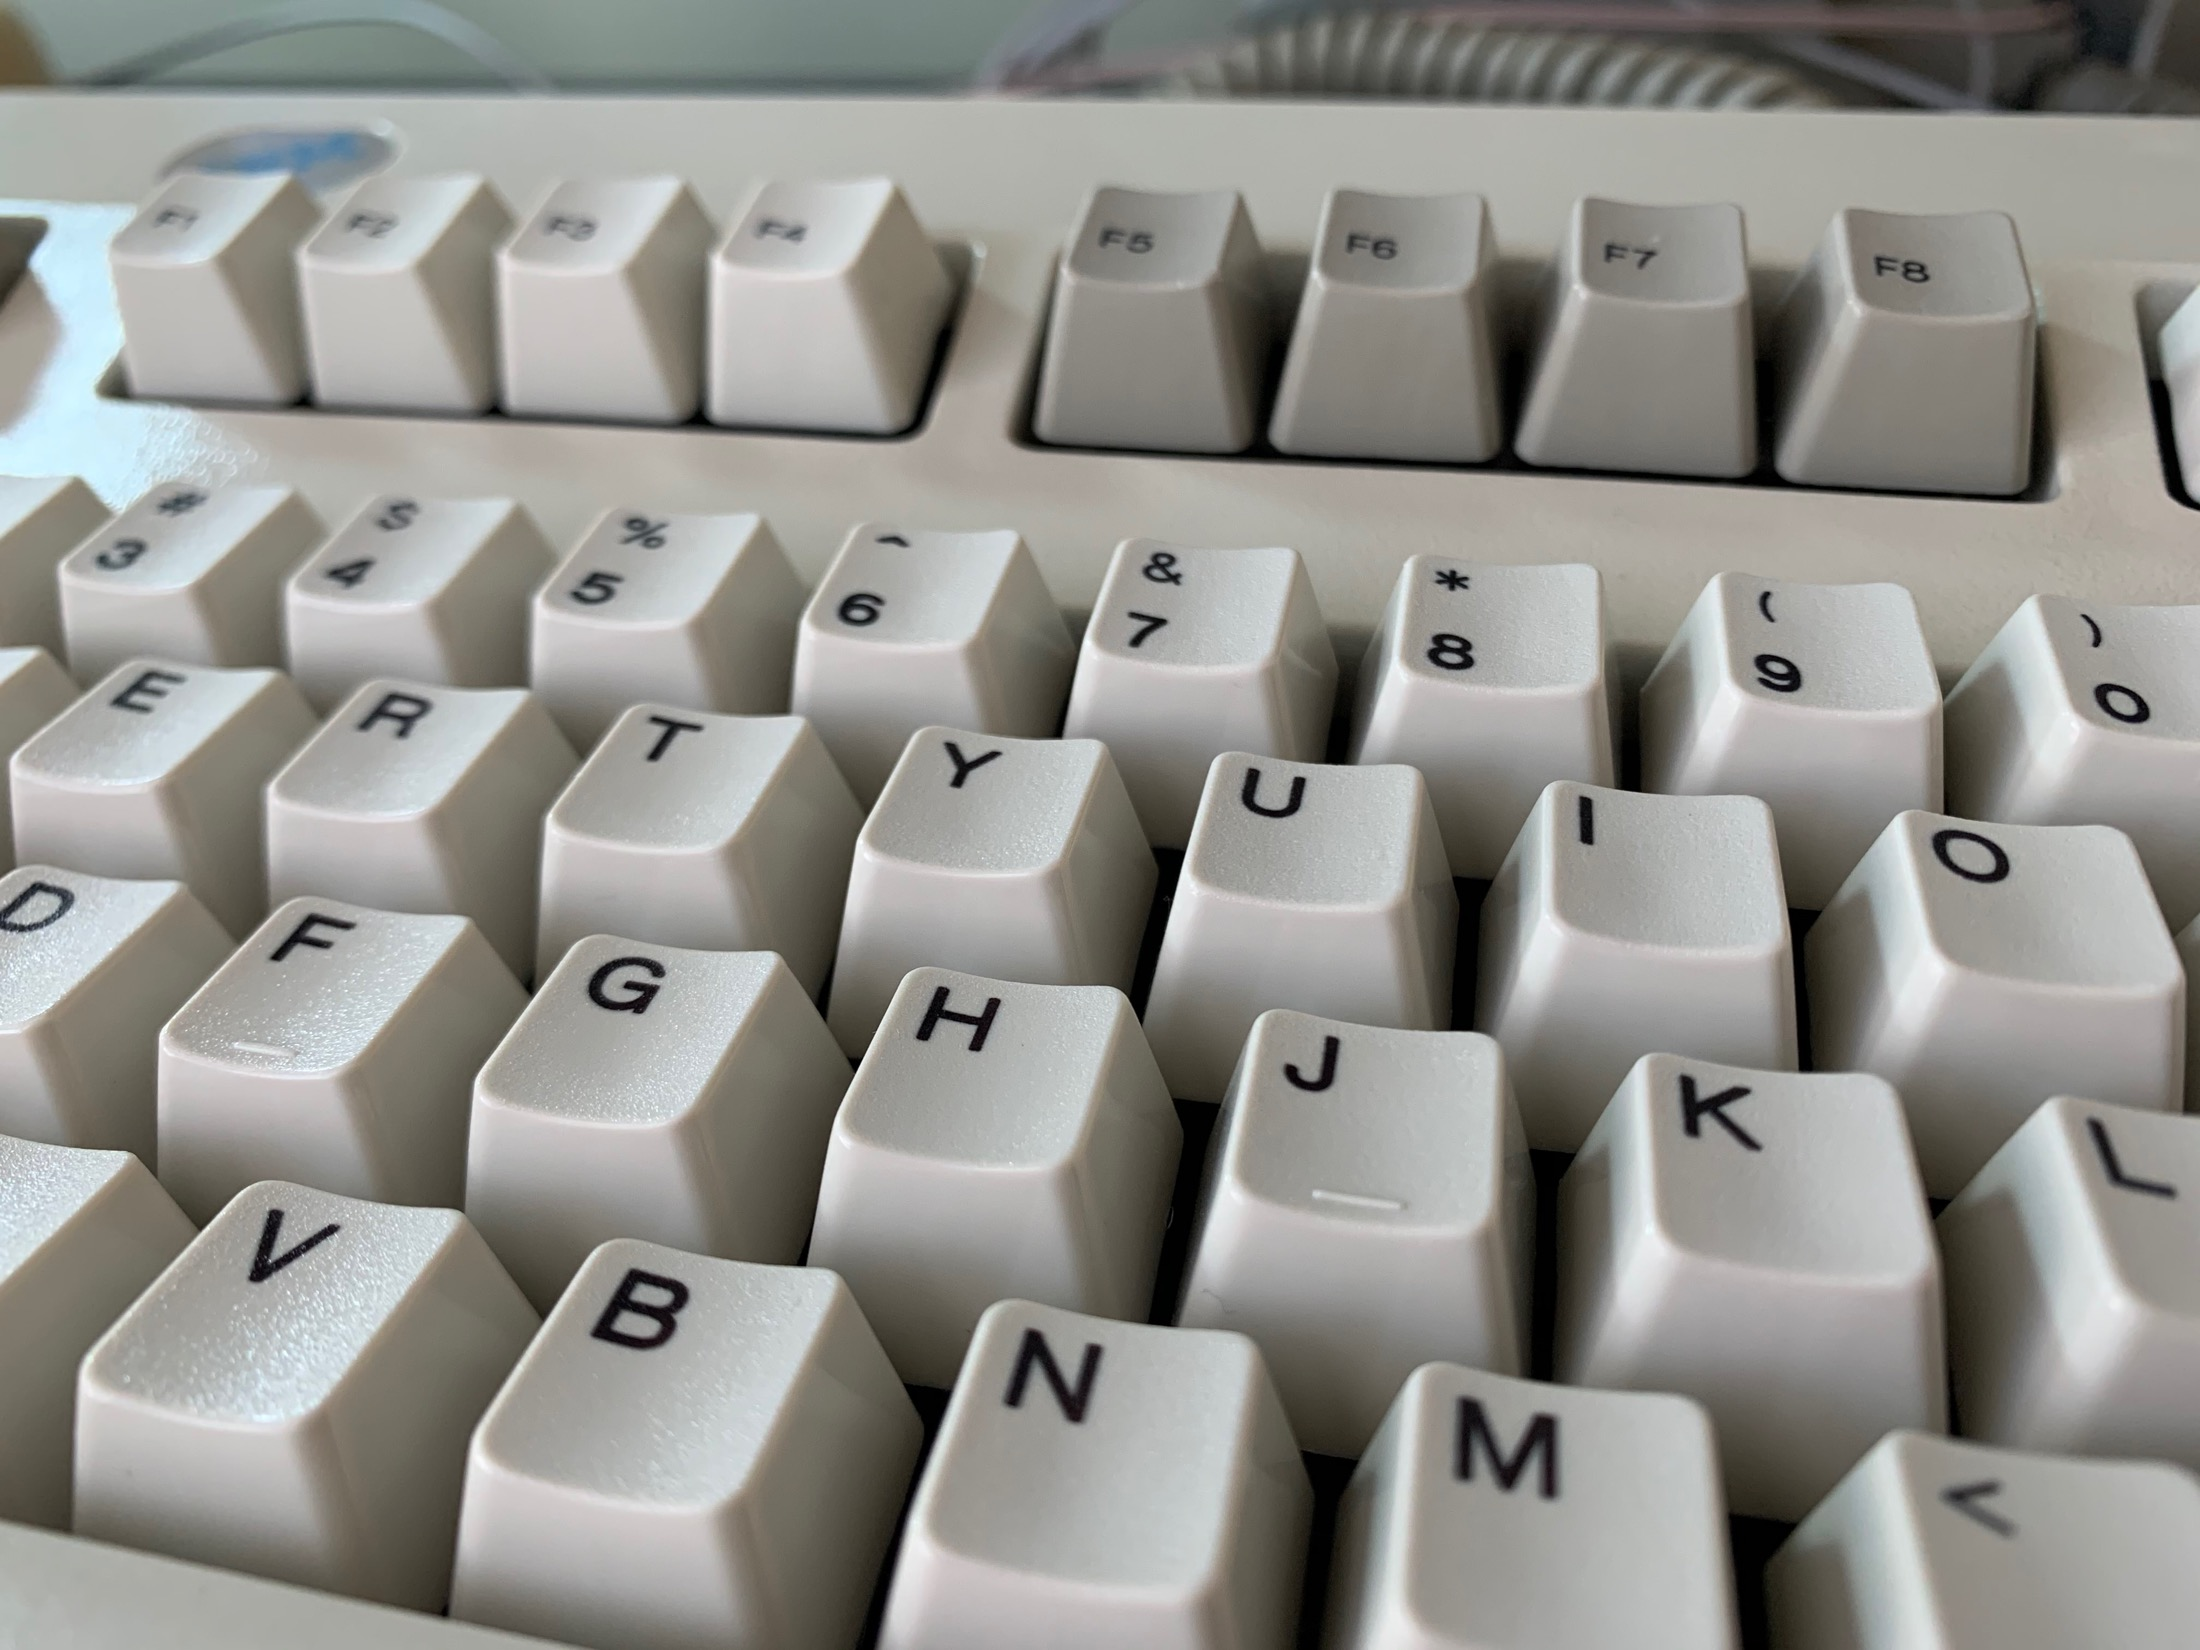 A closeup of an IBM Model M keyboard with very clean keys.